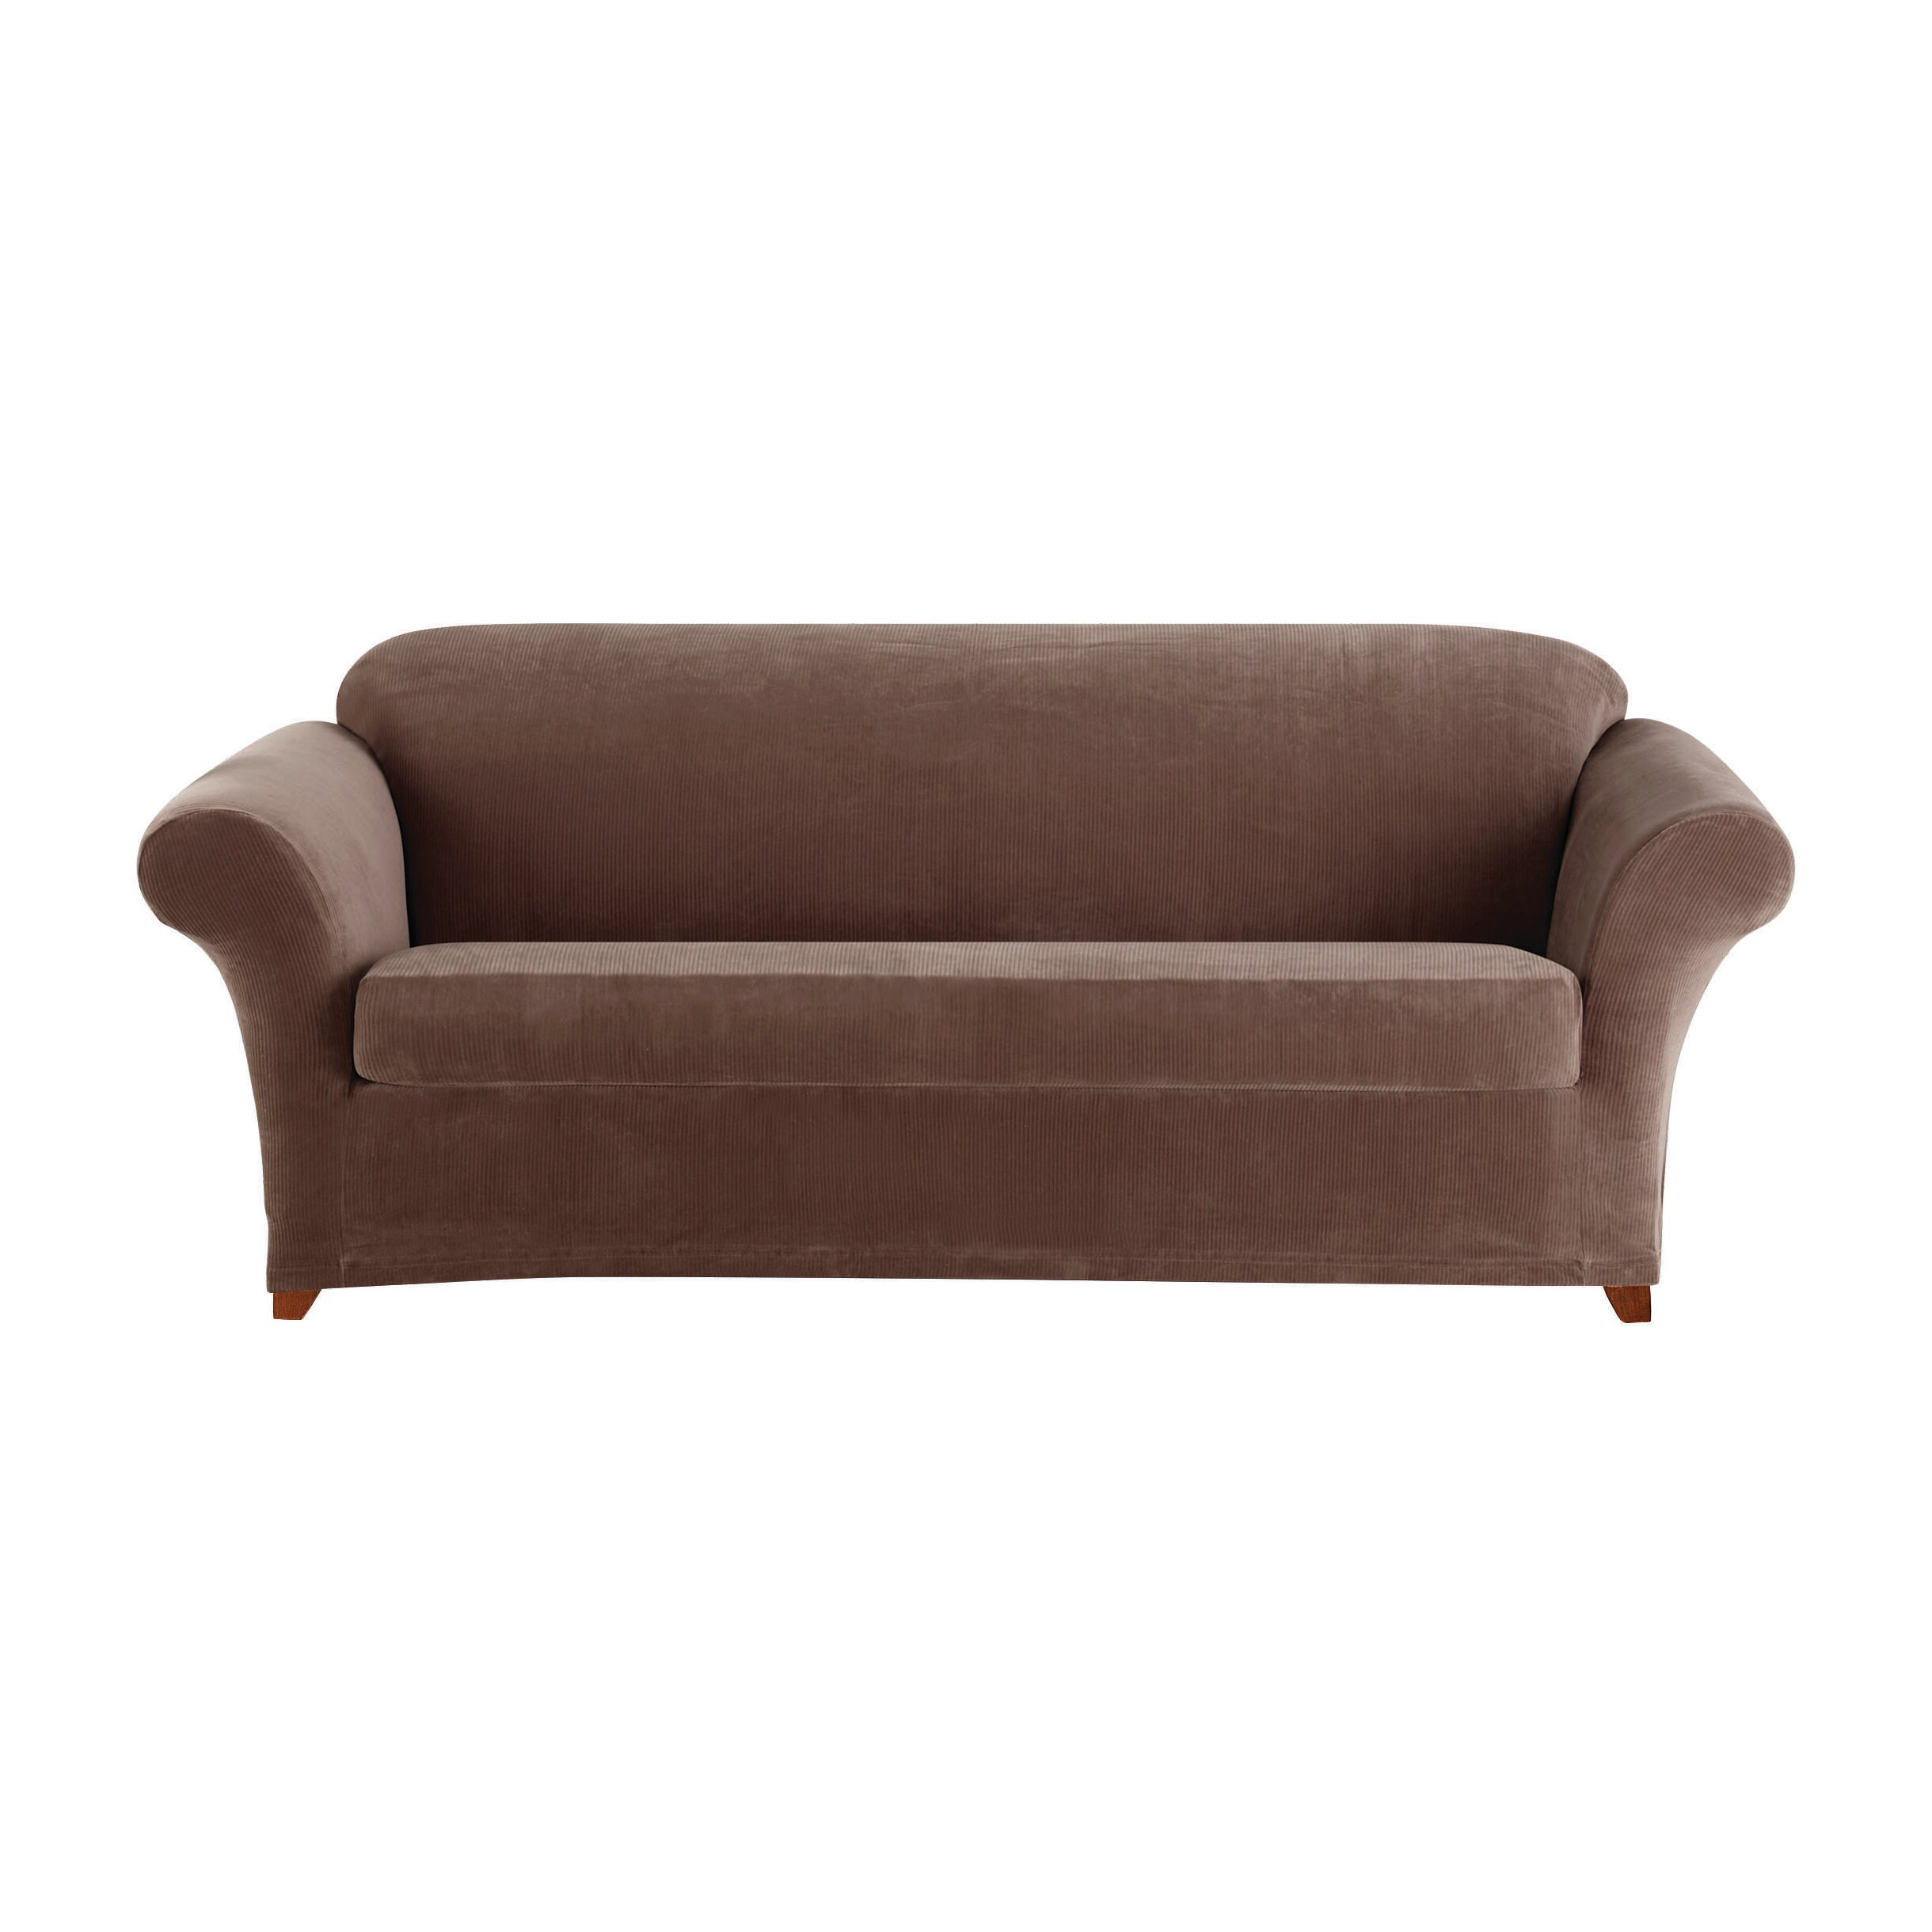 Buy sure fit 174 stretch pearson 2 sofa slipcover in from bed bath beyond Loveseat stretch slipcovers